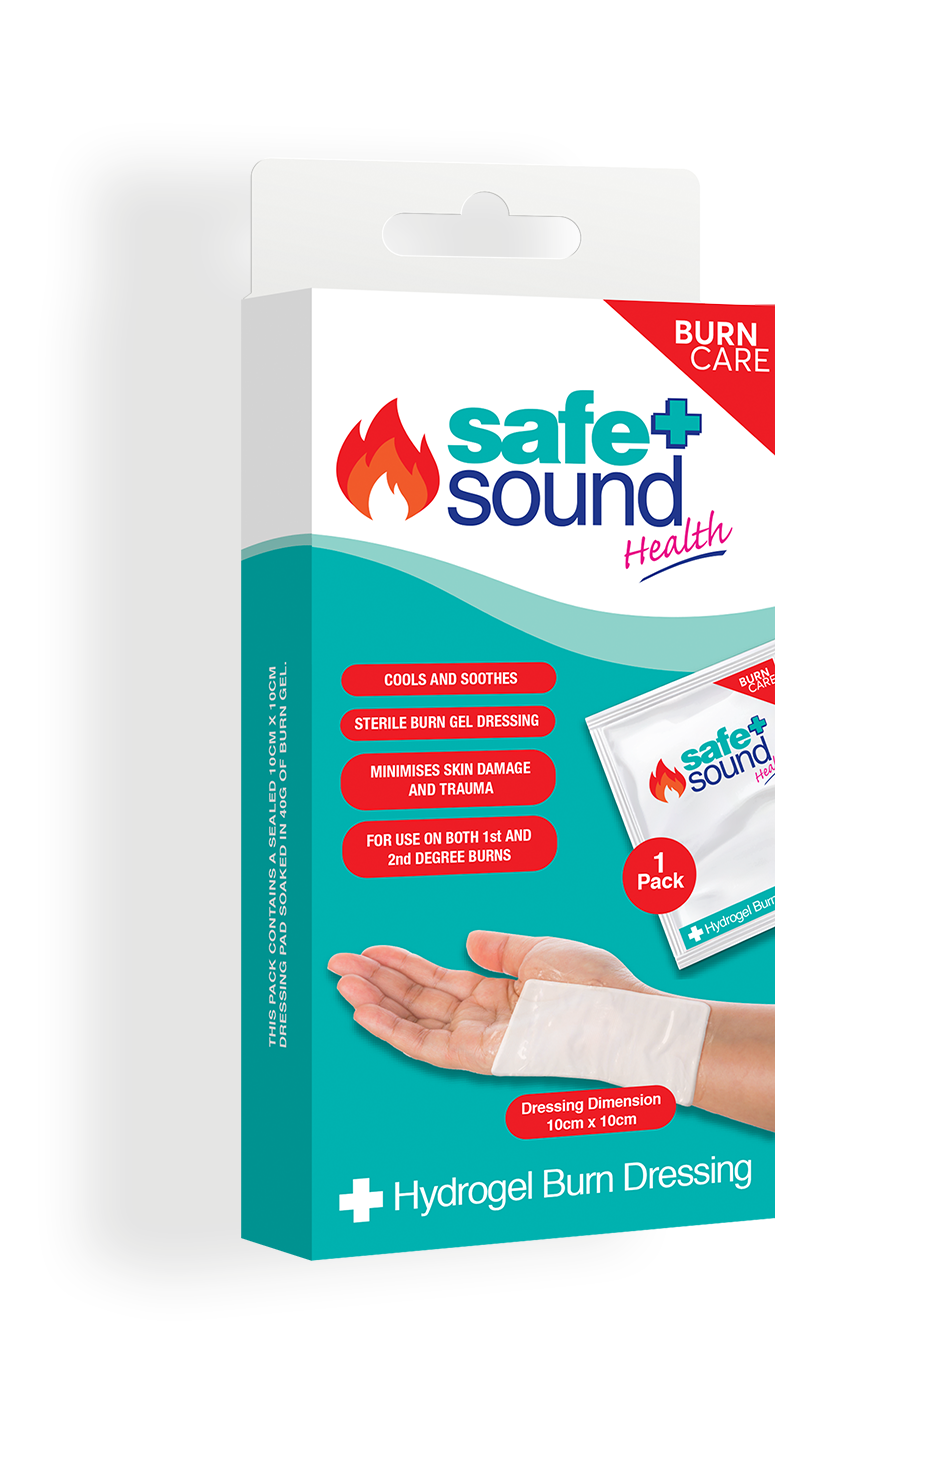 Safe and Sound Health Hydrogel Burn Dressing